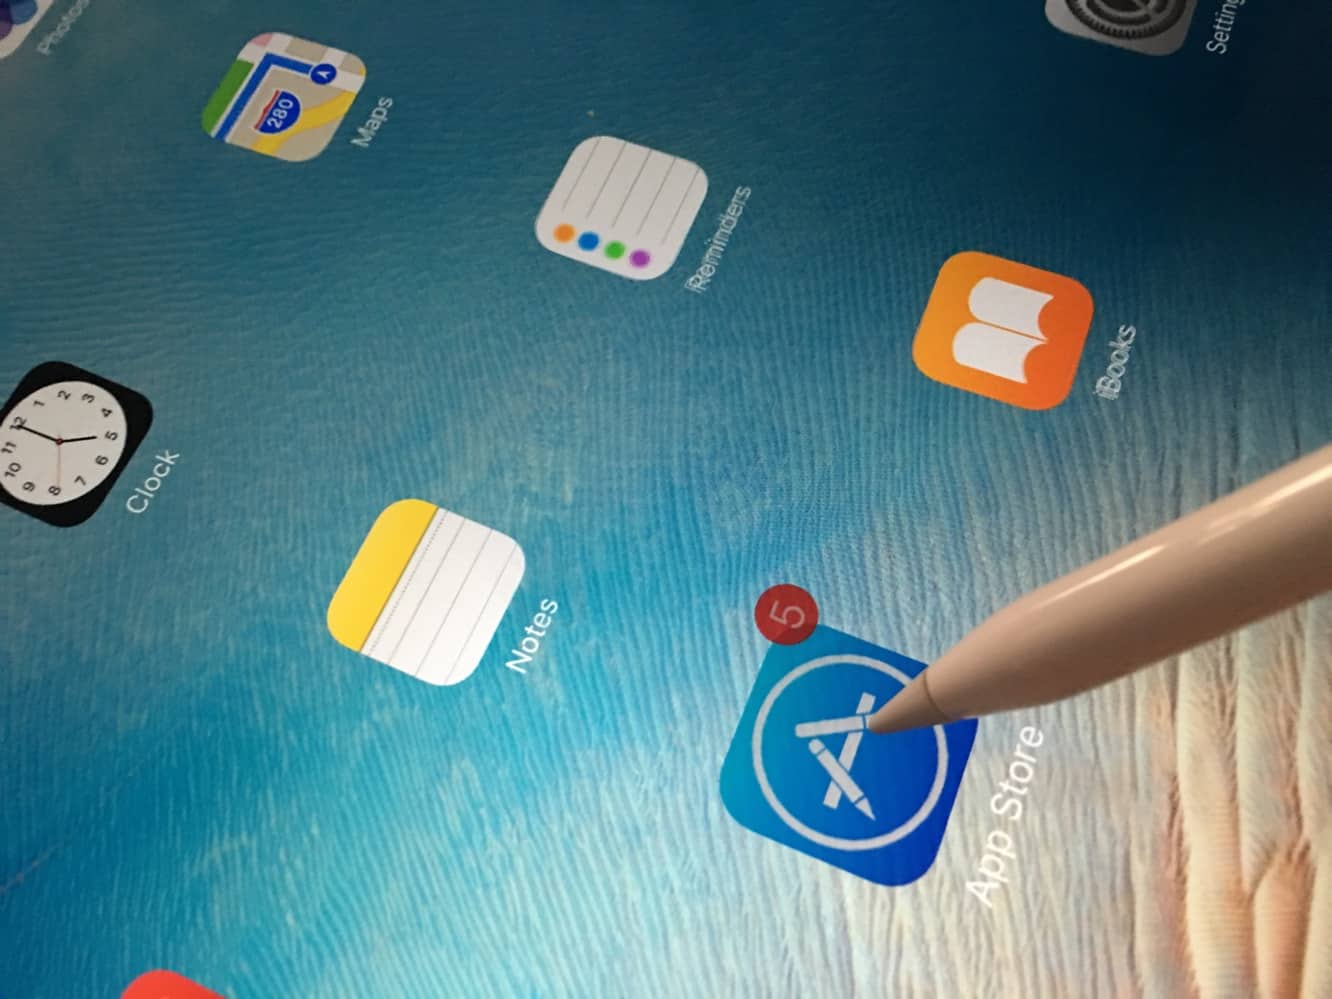 Report: iOS 9.3 may remove Apple Pencil navigation capabilities (Update: Apple says no)